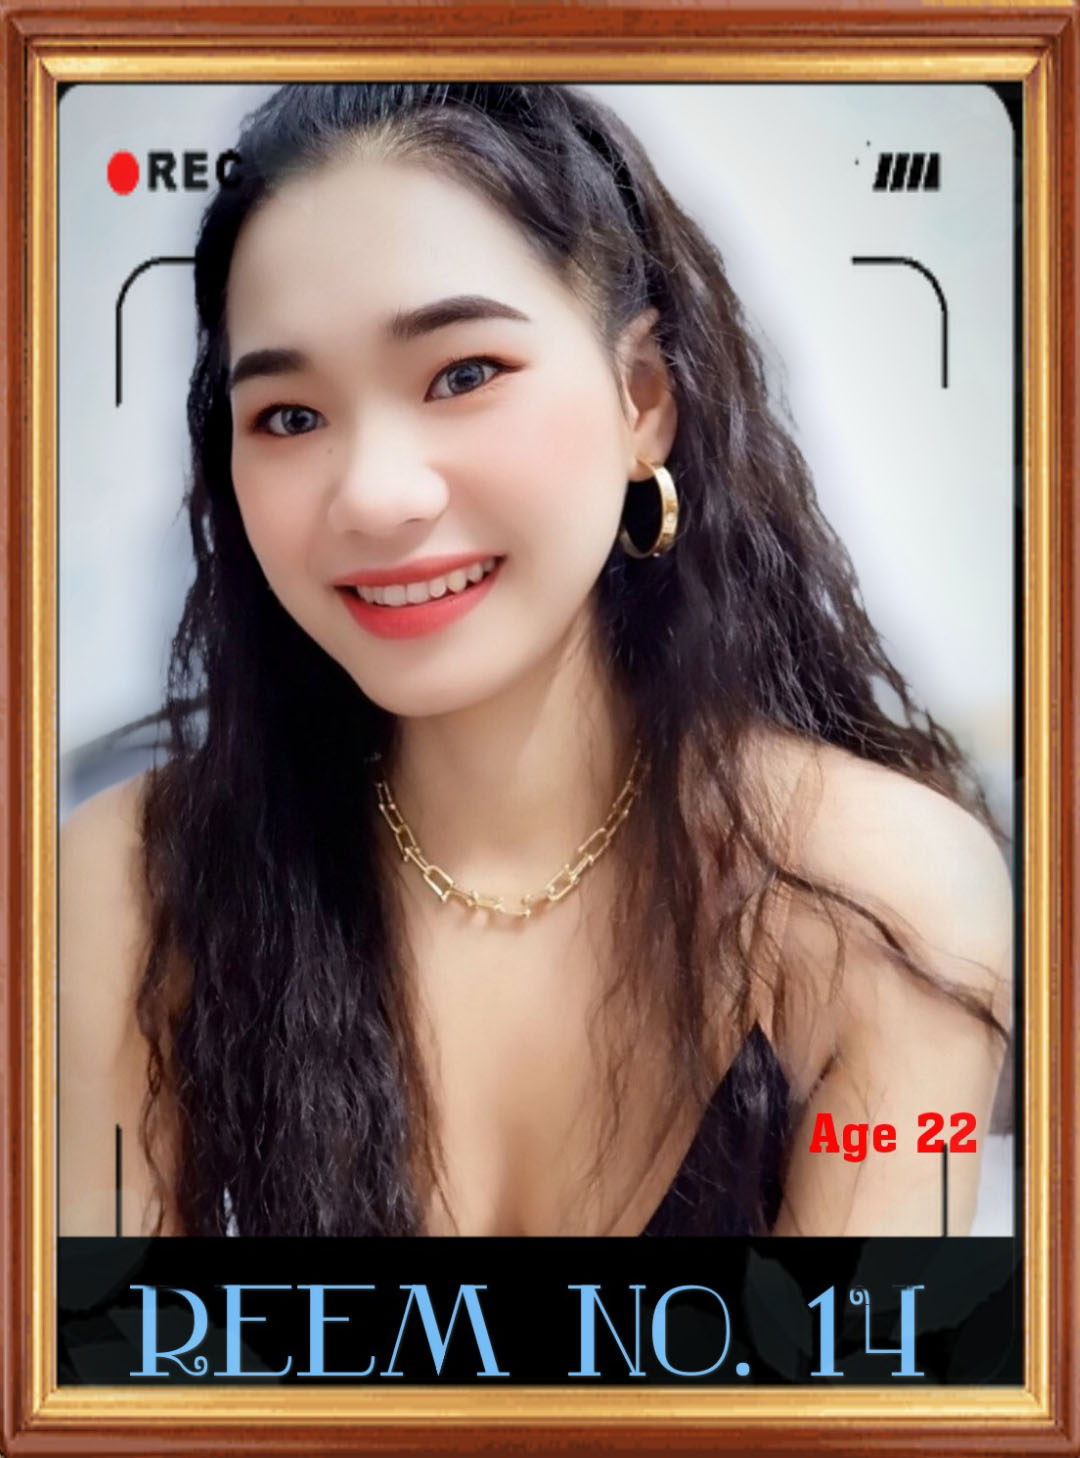 Lifestyle Outcall Massage Service in Bangkok